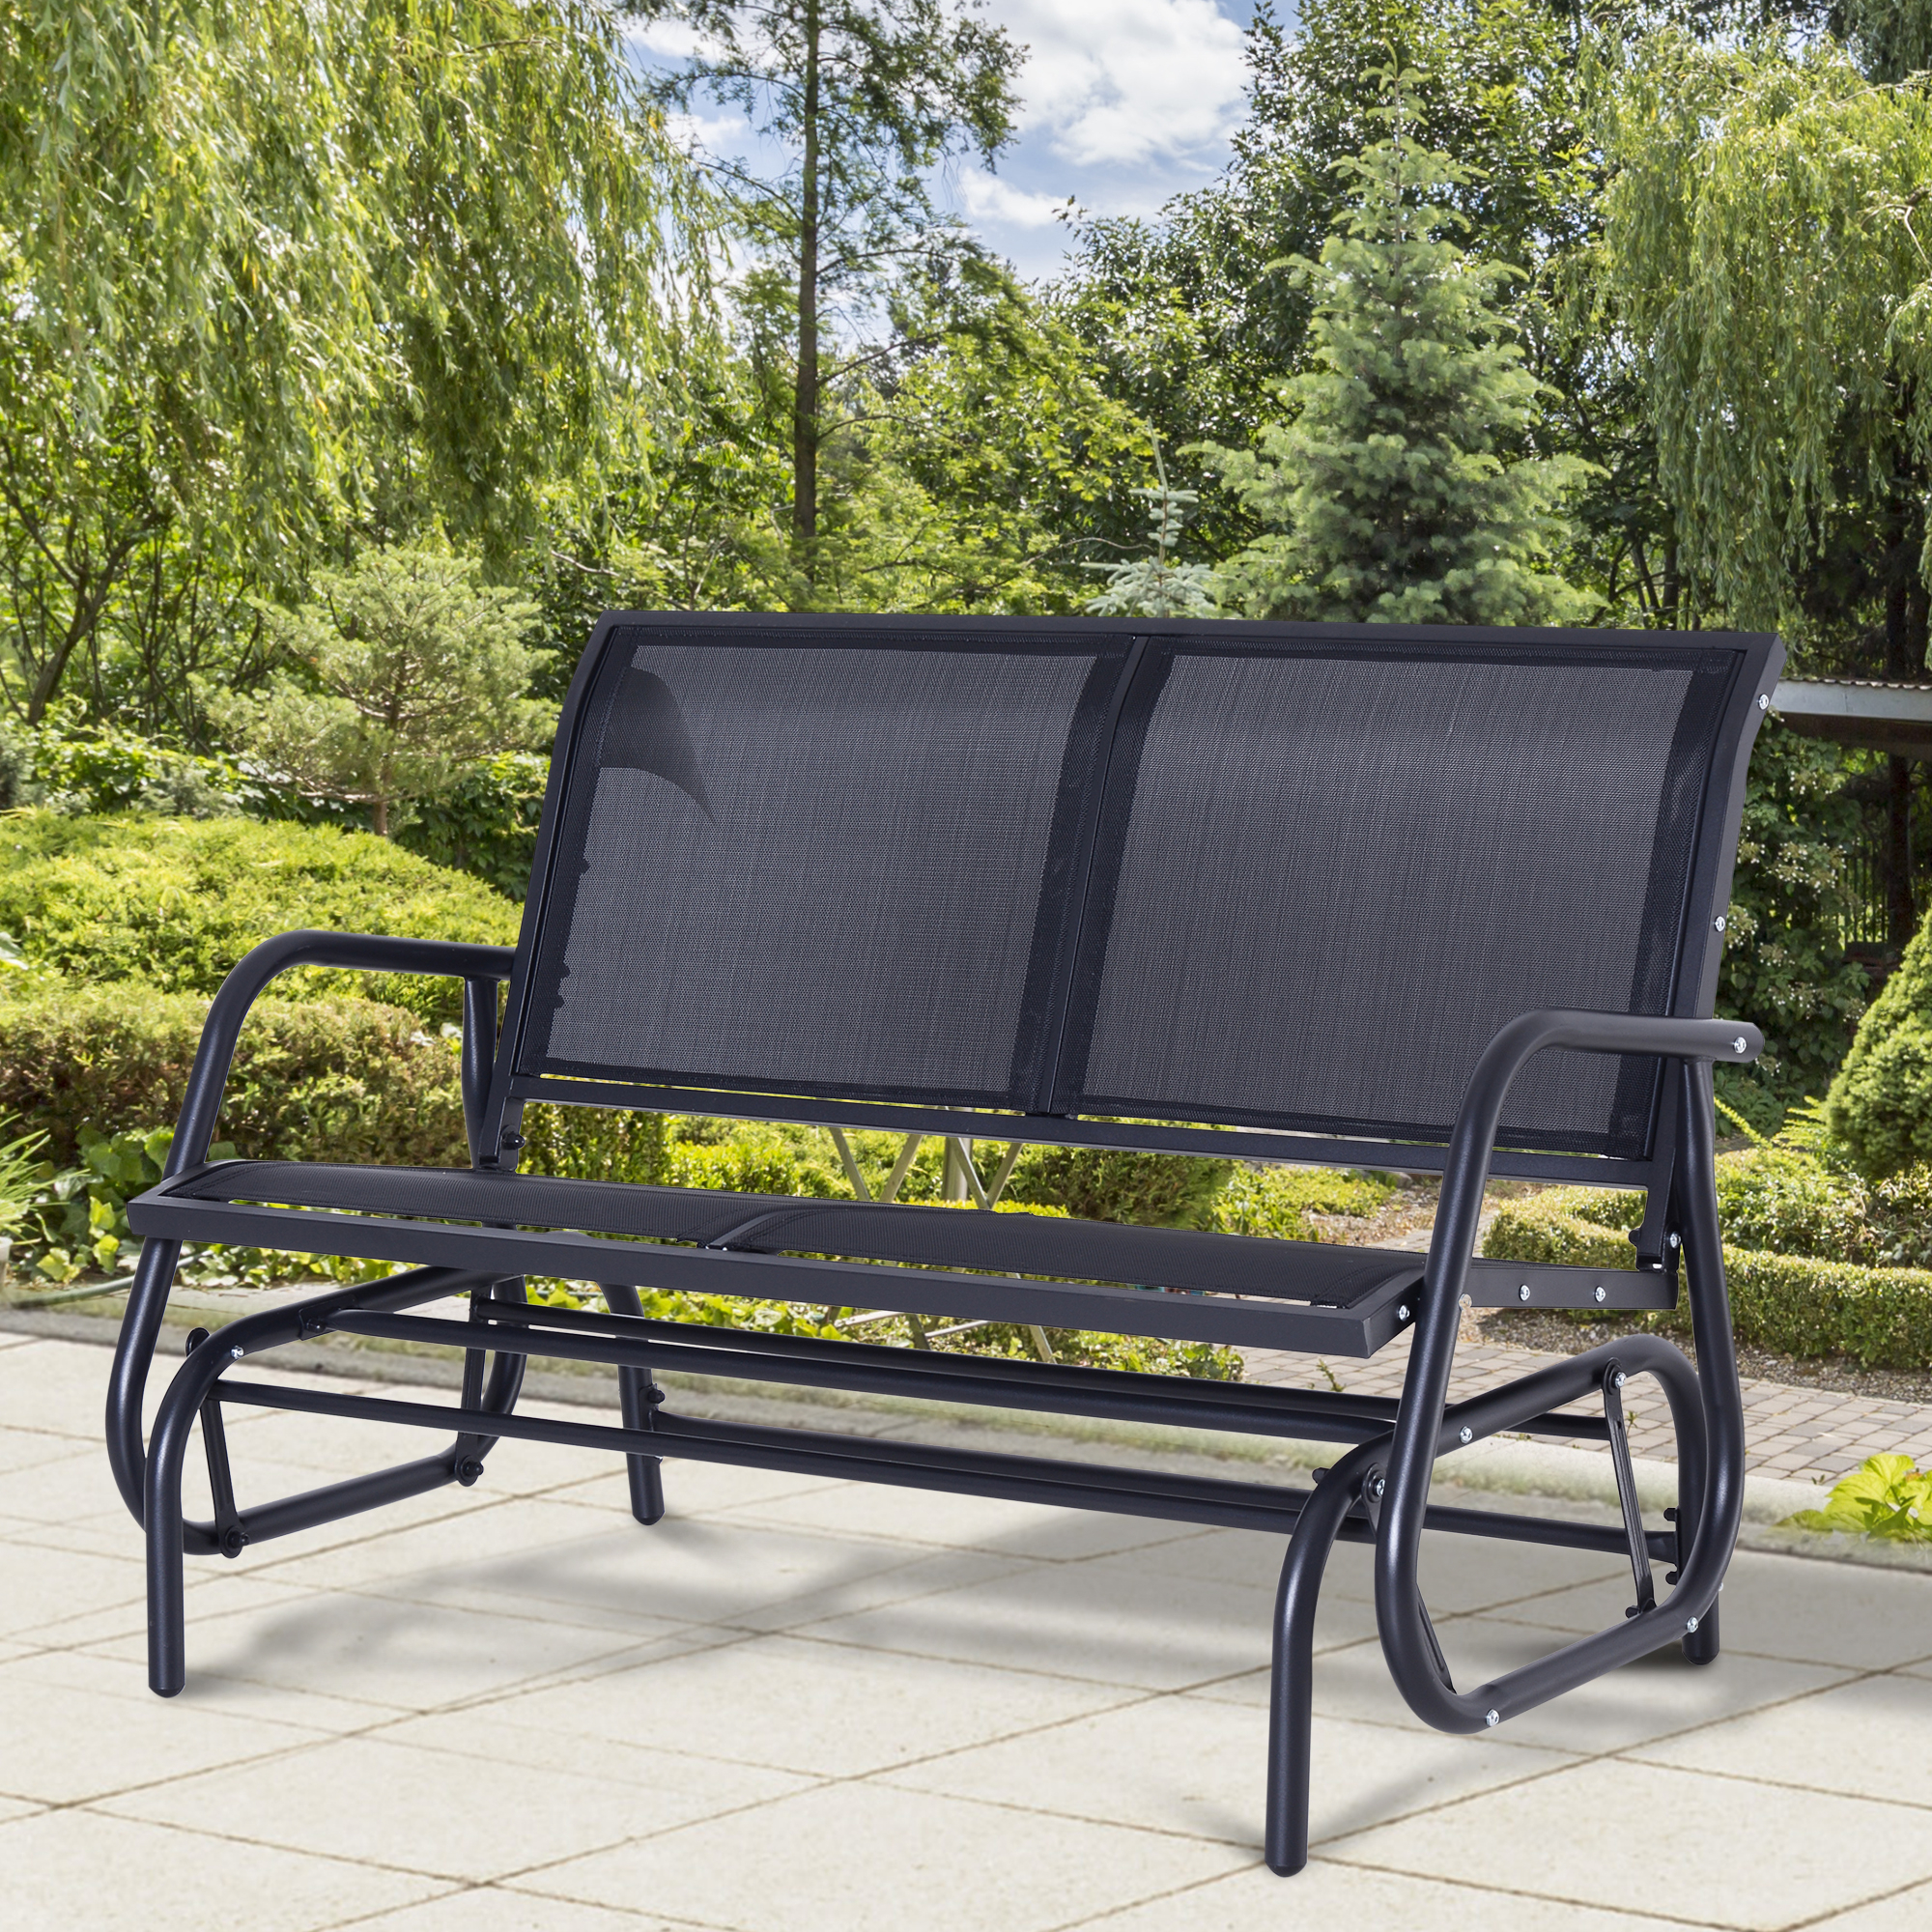 2 Person Black Steel Outdoor Swings In Fashionable Details About Outsunny 2 Person Patio Glider Bench Swing Chair Garden Mesh  Rocker Steel Black (View 2 of 30)